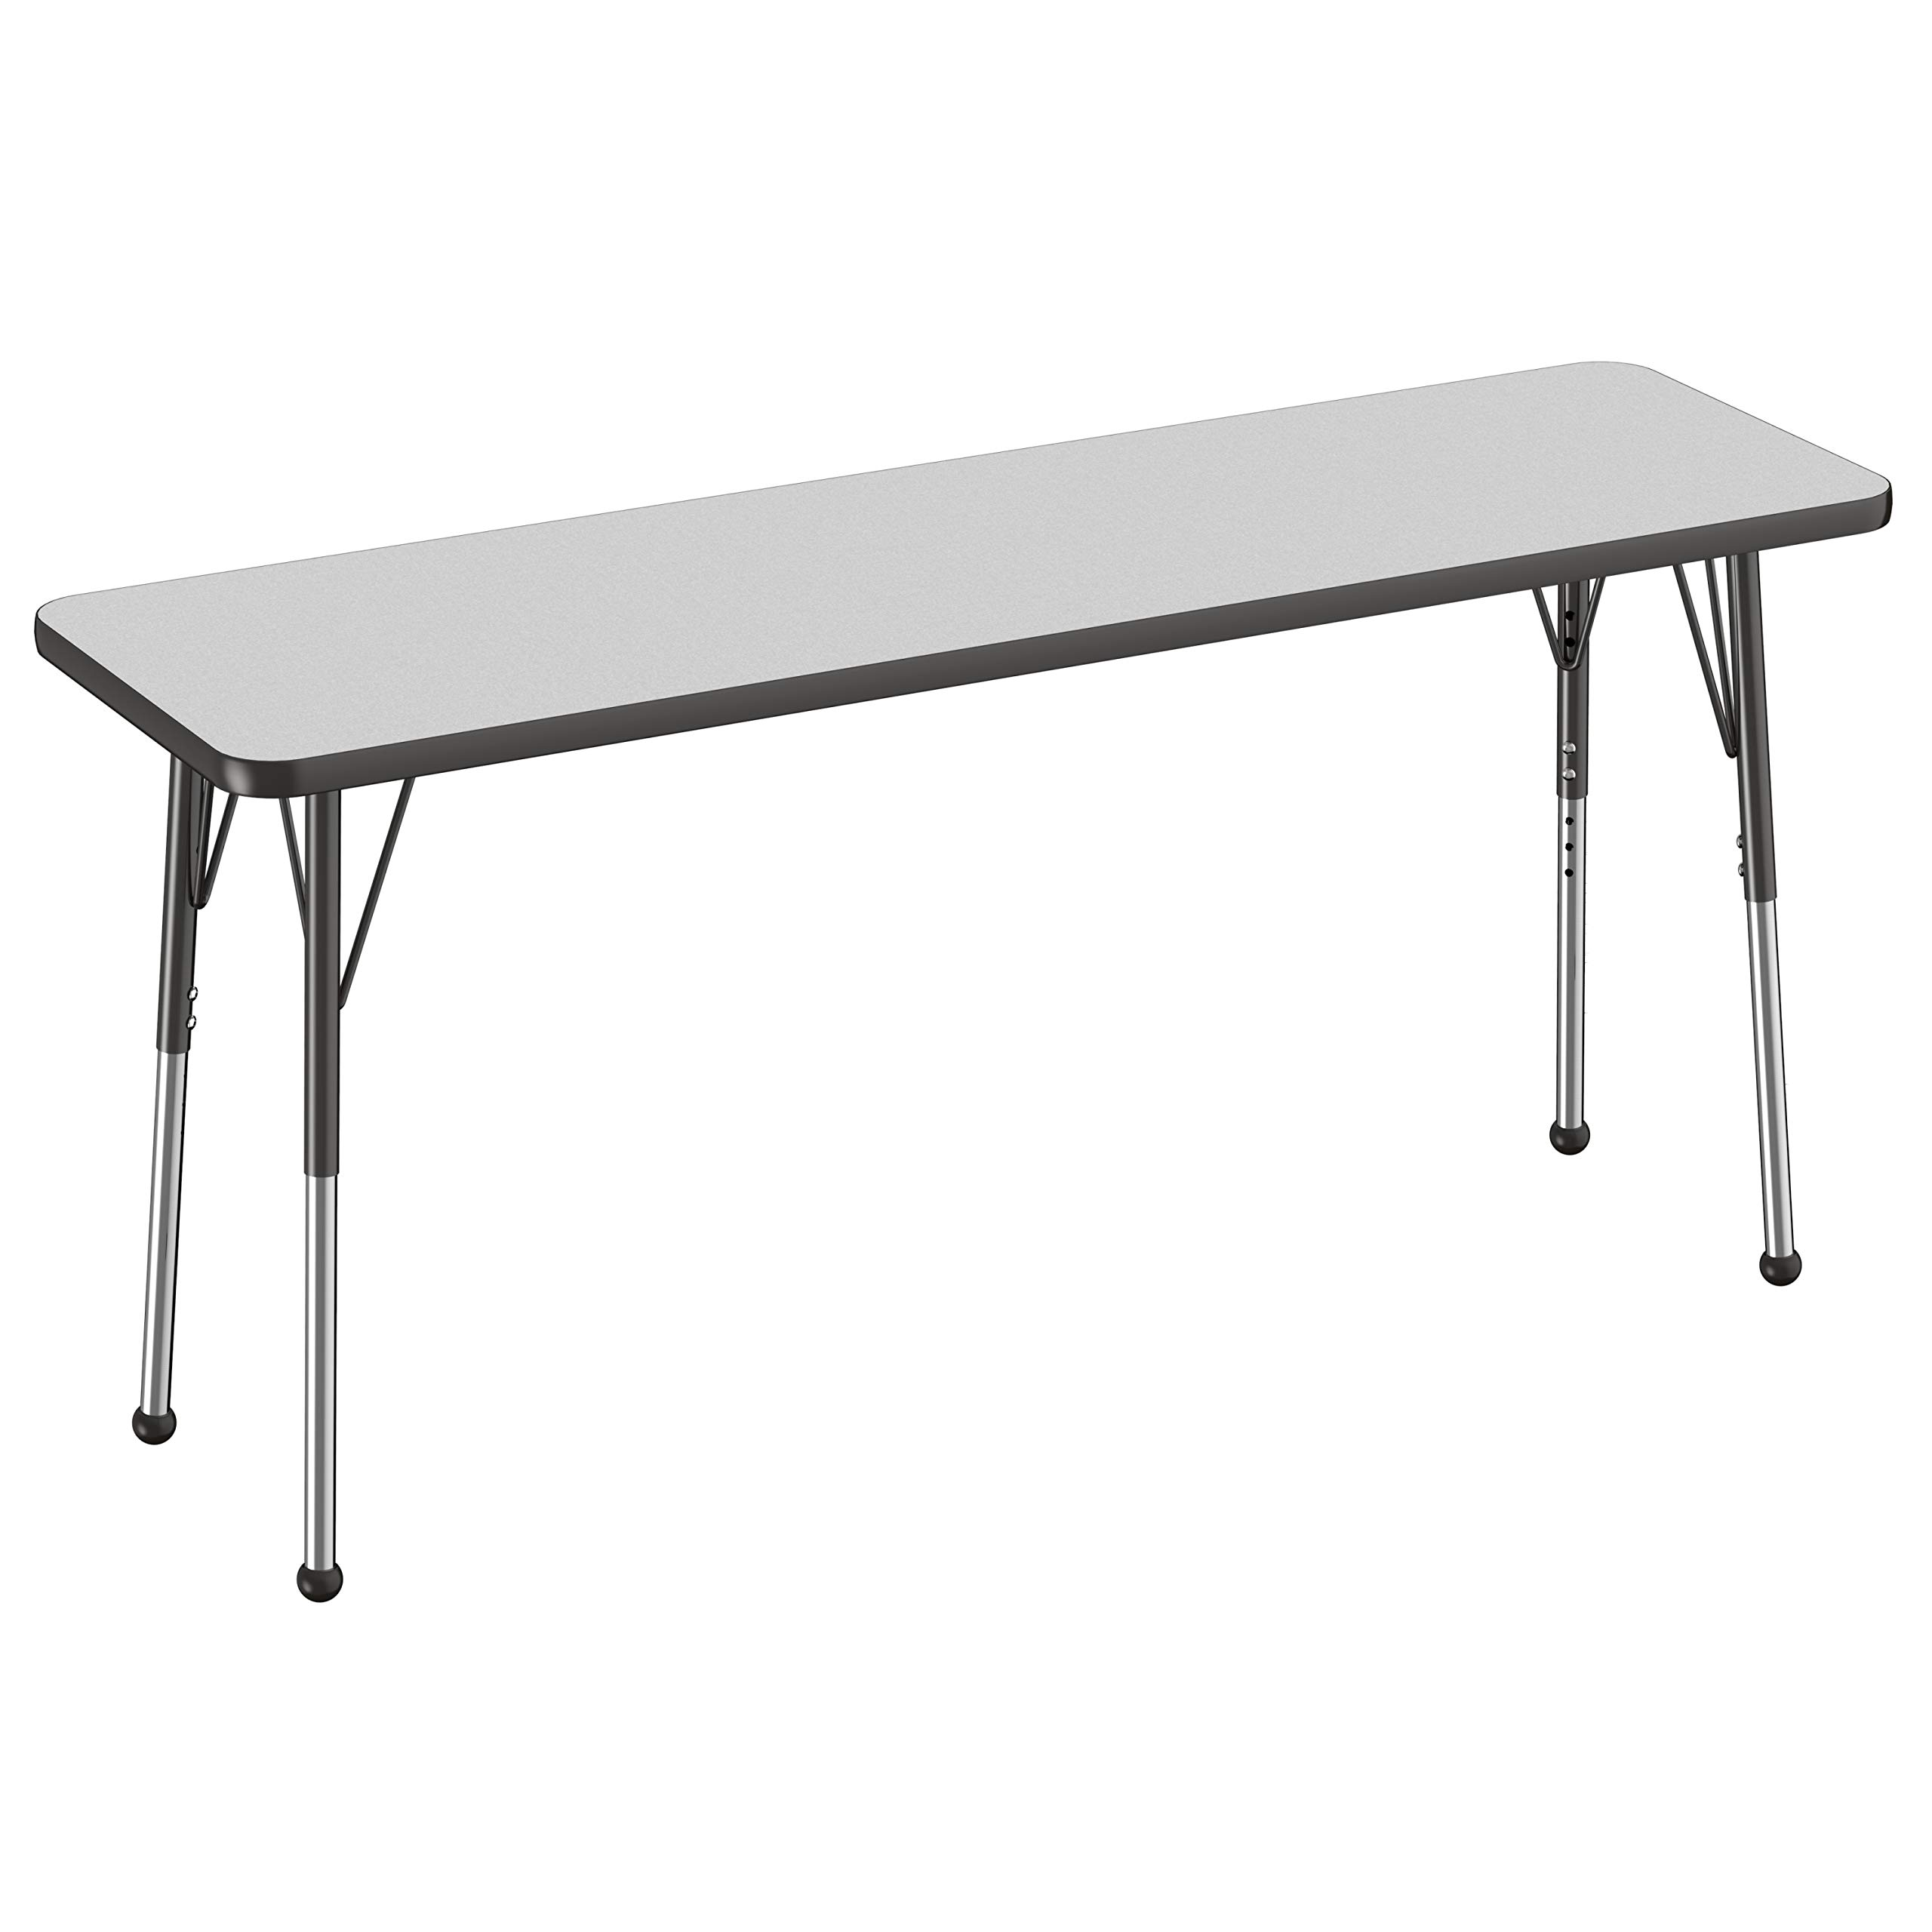 FDP Rectangle Activity School and Office Table (18 x 60 inch) Standard Legs with Ball Glides Adjustable Height 19-30 inches - Gray Top and Black Edge